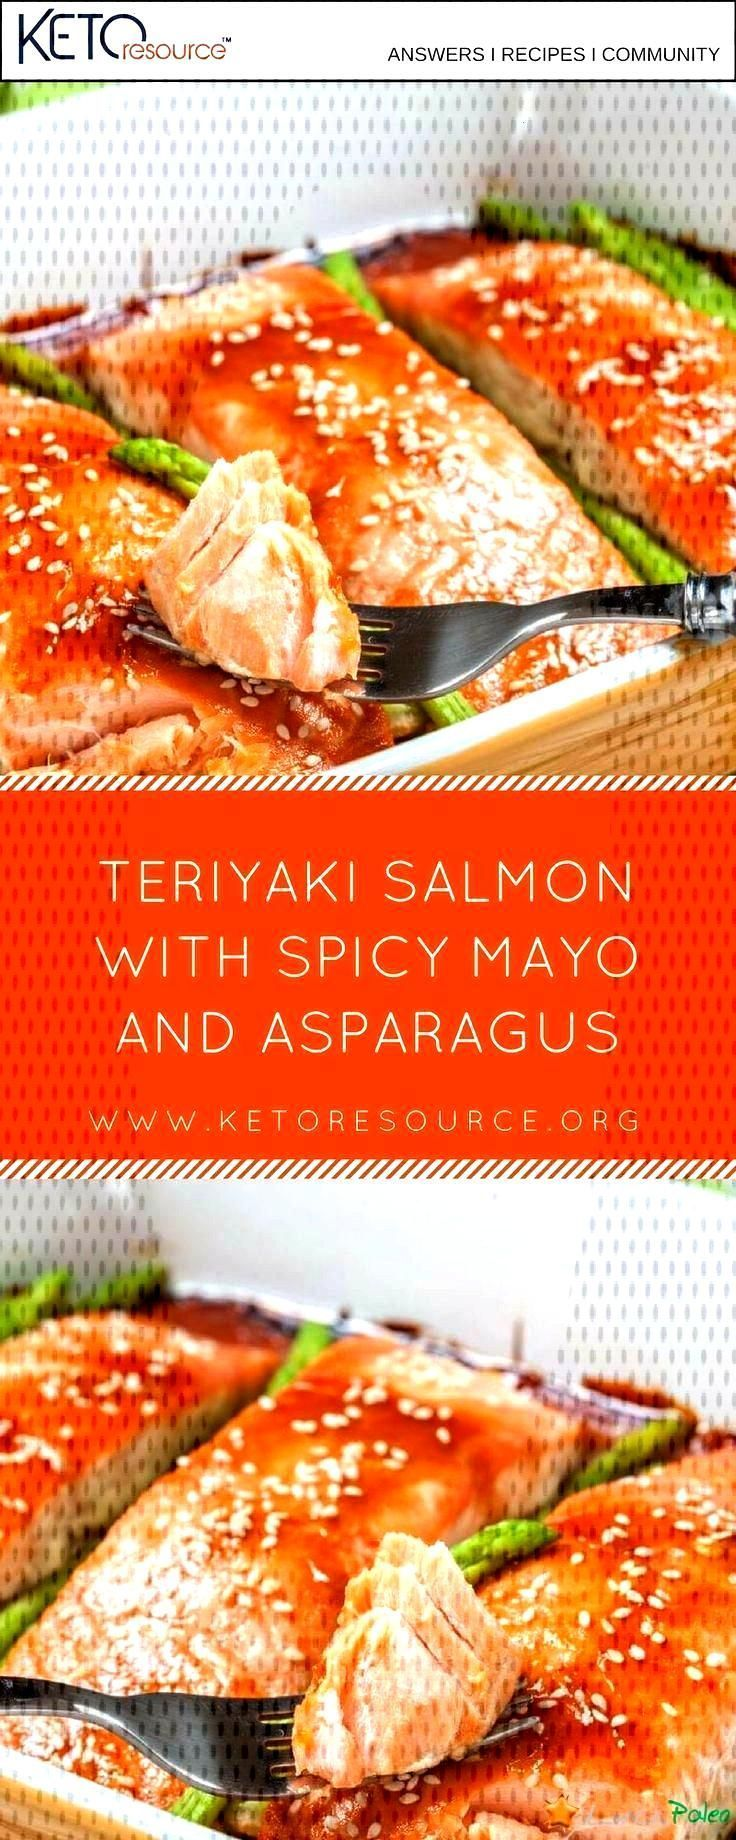 #teriyakisalmon #newteriyaki #asparagus #ketogenic #teriyaki #healthy #teriyak #salmon #spicy #ideas #diet #mayo #with #keto #and Salmon with Spicy Mayo and Asparagus - - - Teriyaki Salmon with Spicy Mayo and Asparagus - - - TeriSalmon with Spicy Mayo and Asparagus - - - Teriyaki Salmon with Spicy Mayo and Asparagus - - - Teriyaki Salmon with Spicy Mayo and Asparagus - -Teriyaki Salmon with Spicy Mayo and Asparagus - - - Teriyaki Salmon with Spicy Mayo and Asparagus - - - Teriyaki Salmon ... #te #teriyakisalmon